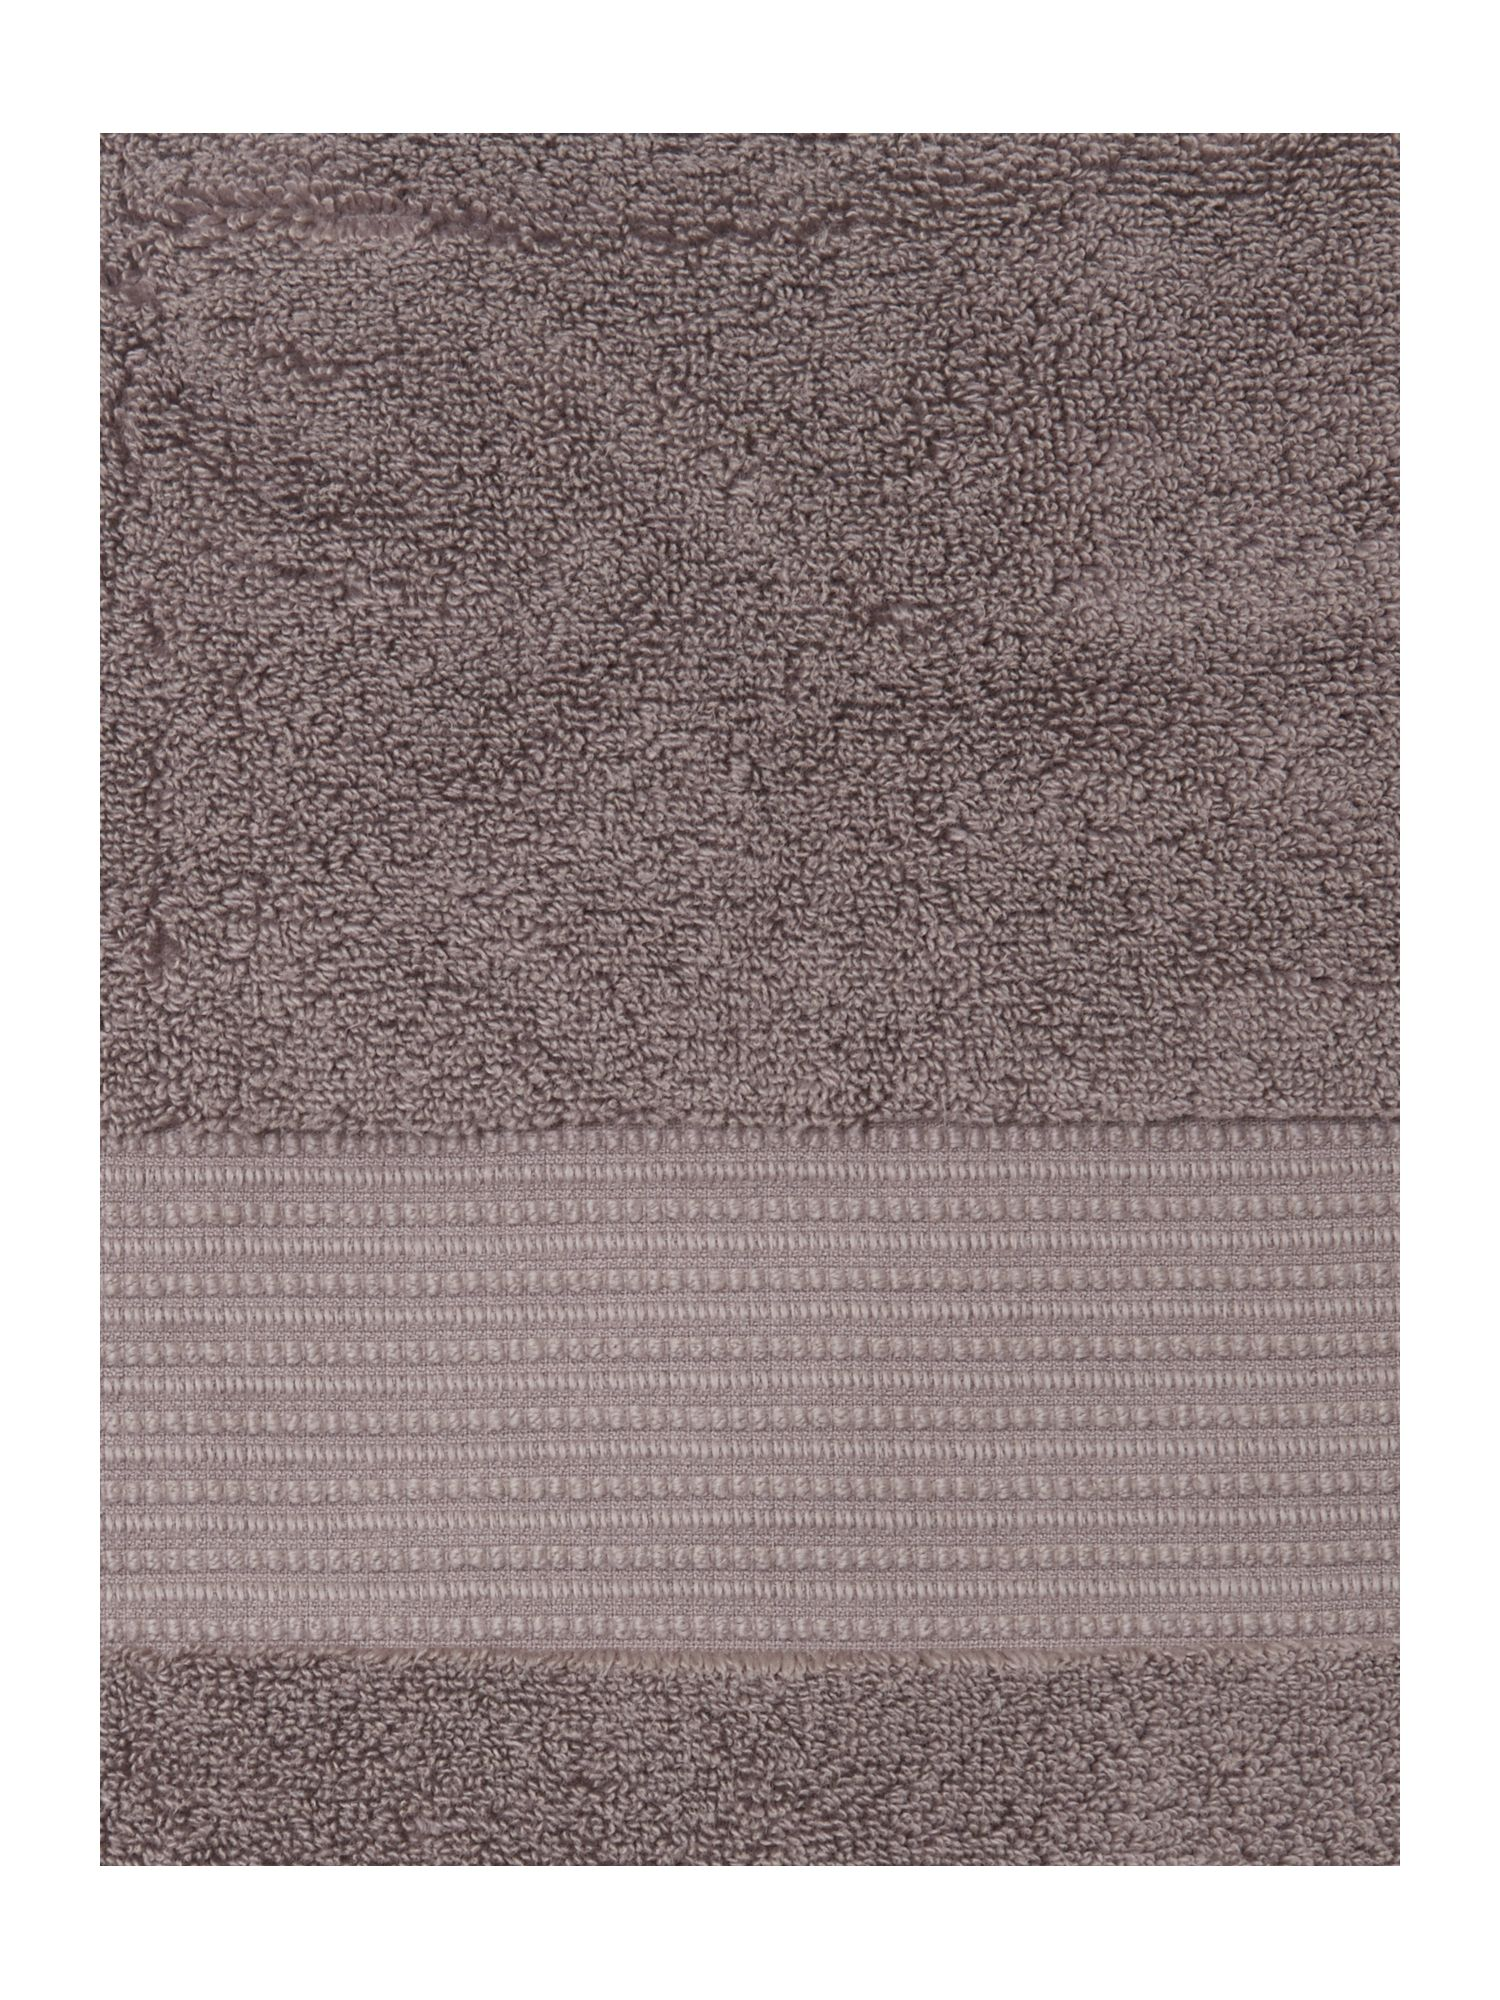 Ultra Luxe towels in slate